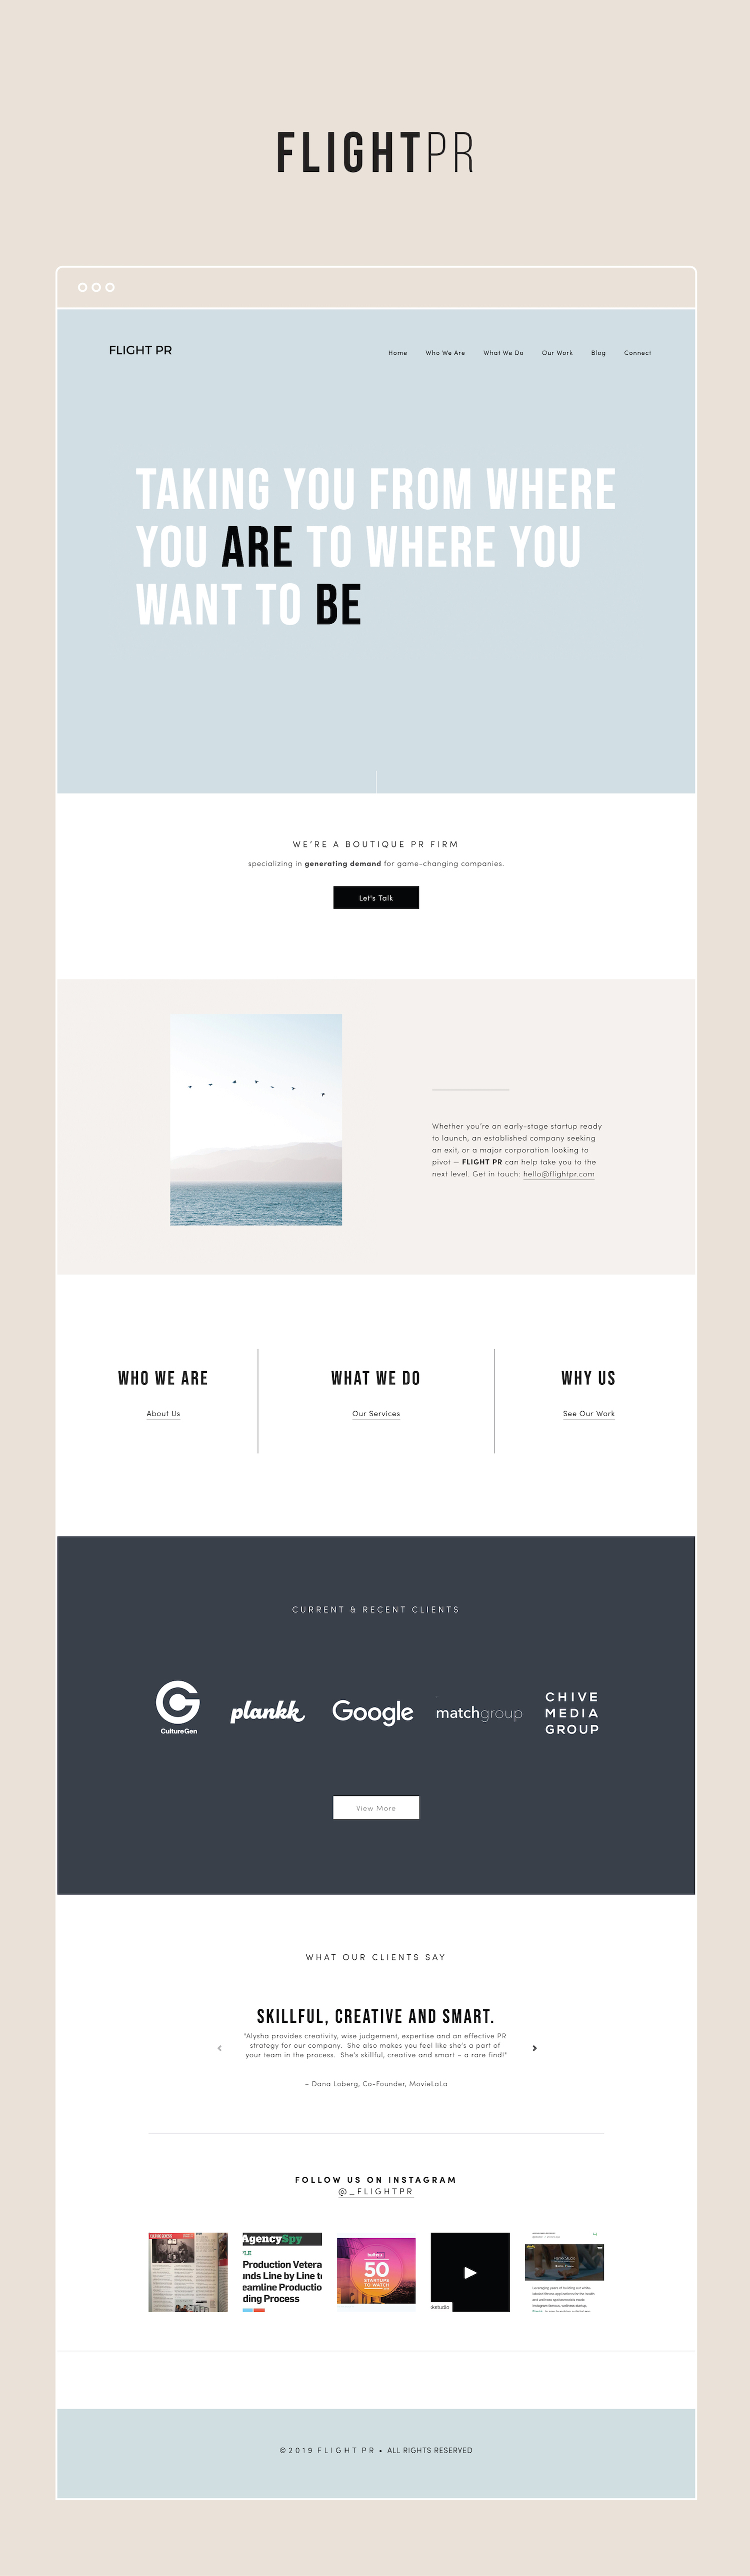 Custom, Minimal, Typography Squarespace Website Design | By GoLive